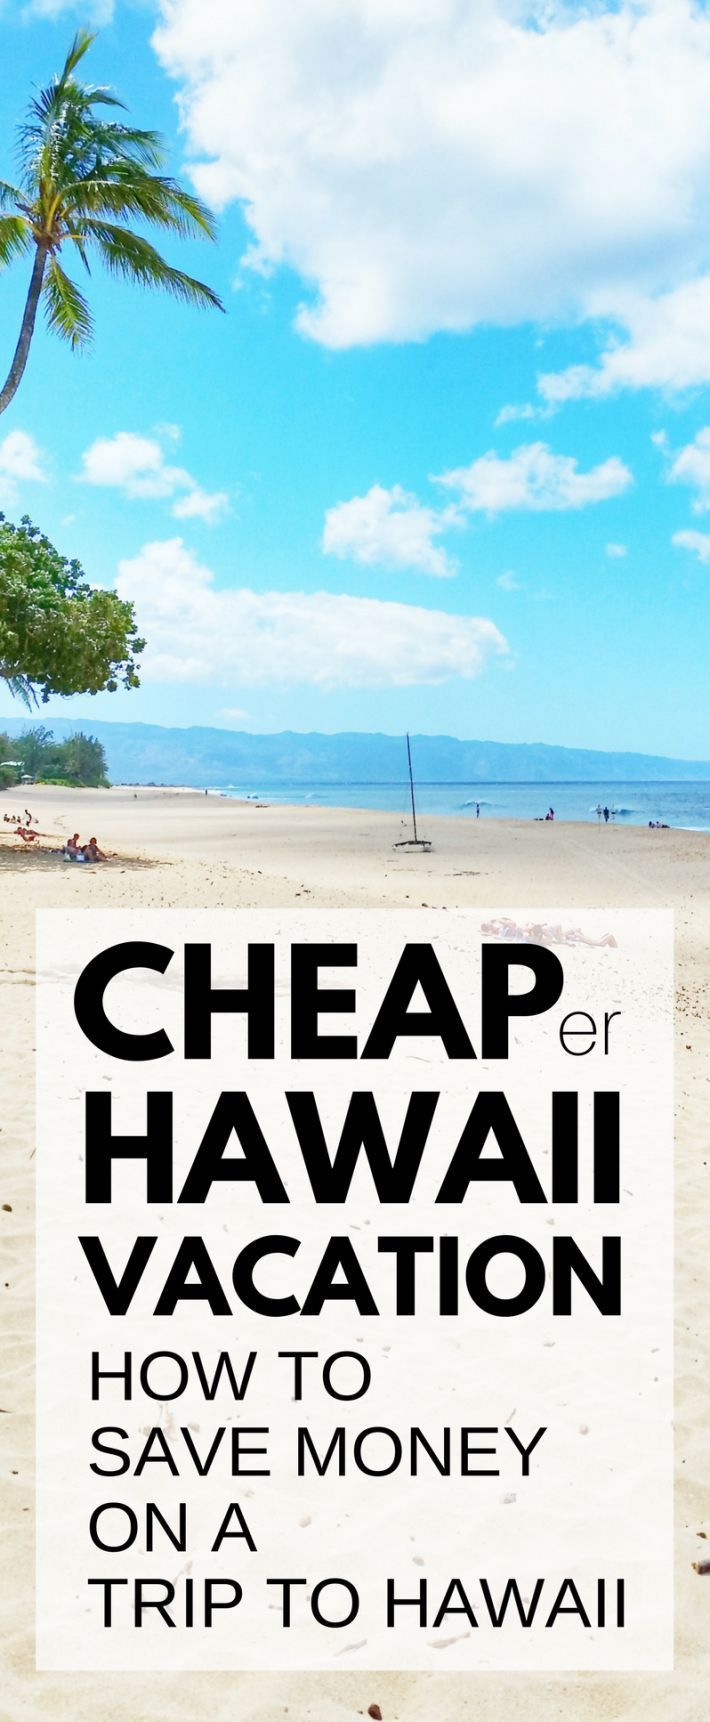 How much does it cost to go to Hawaii? Moneysaving tips